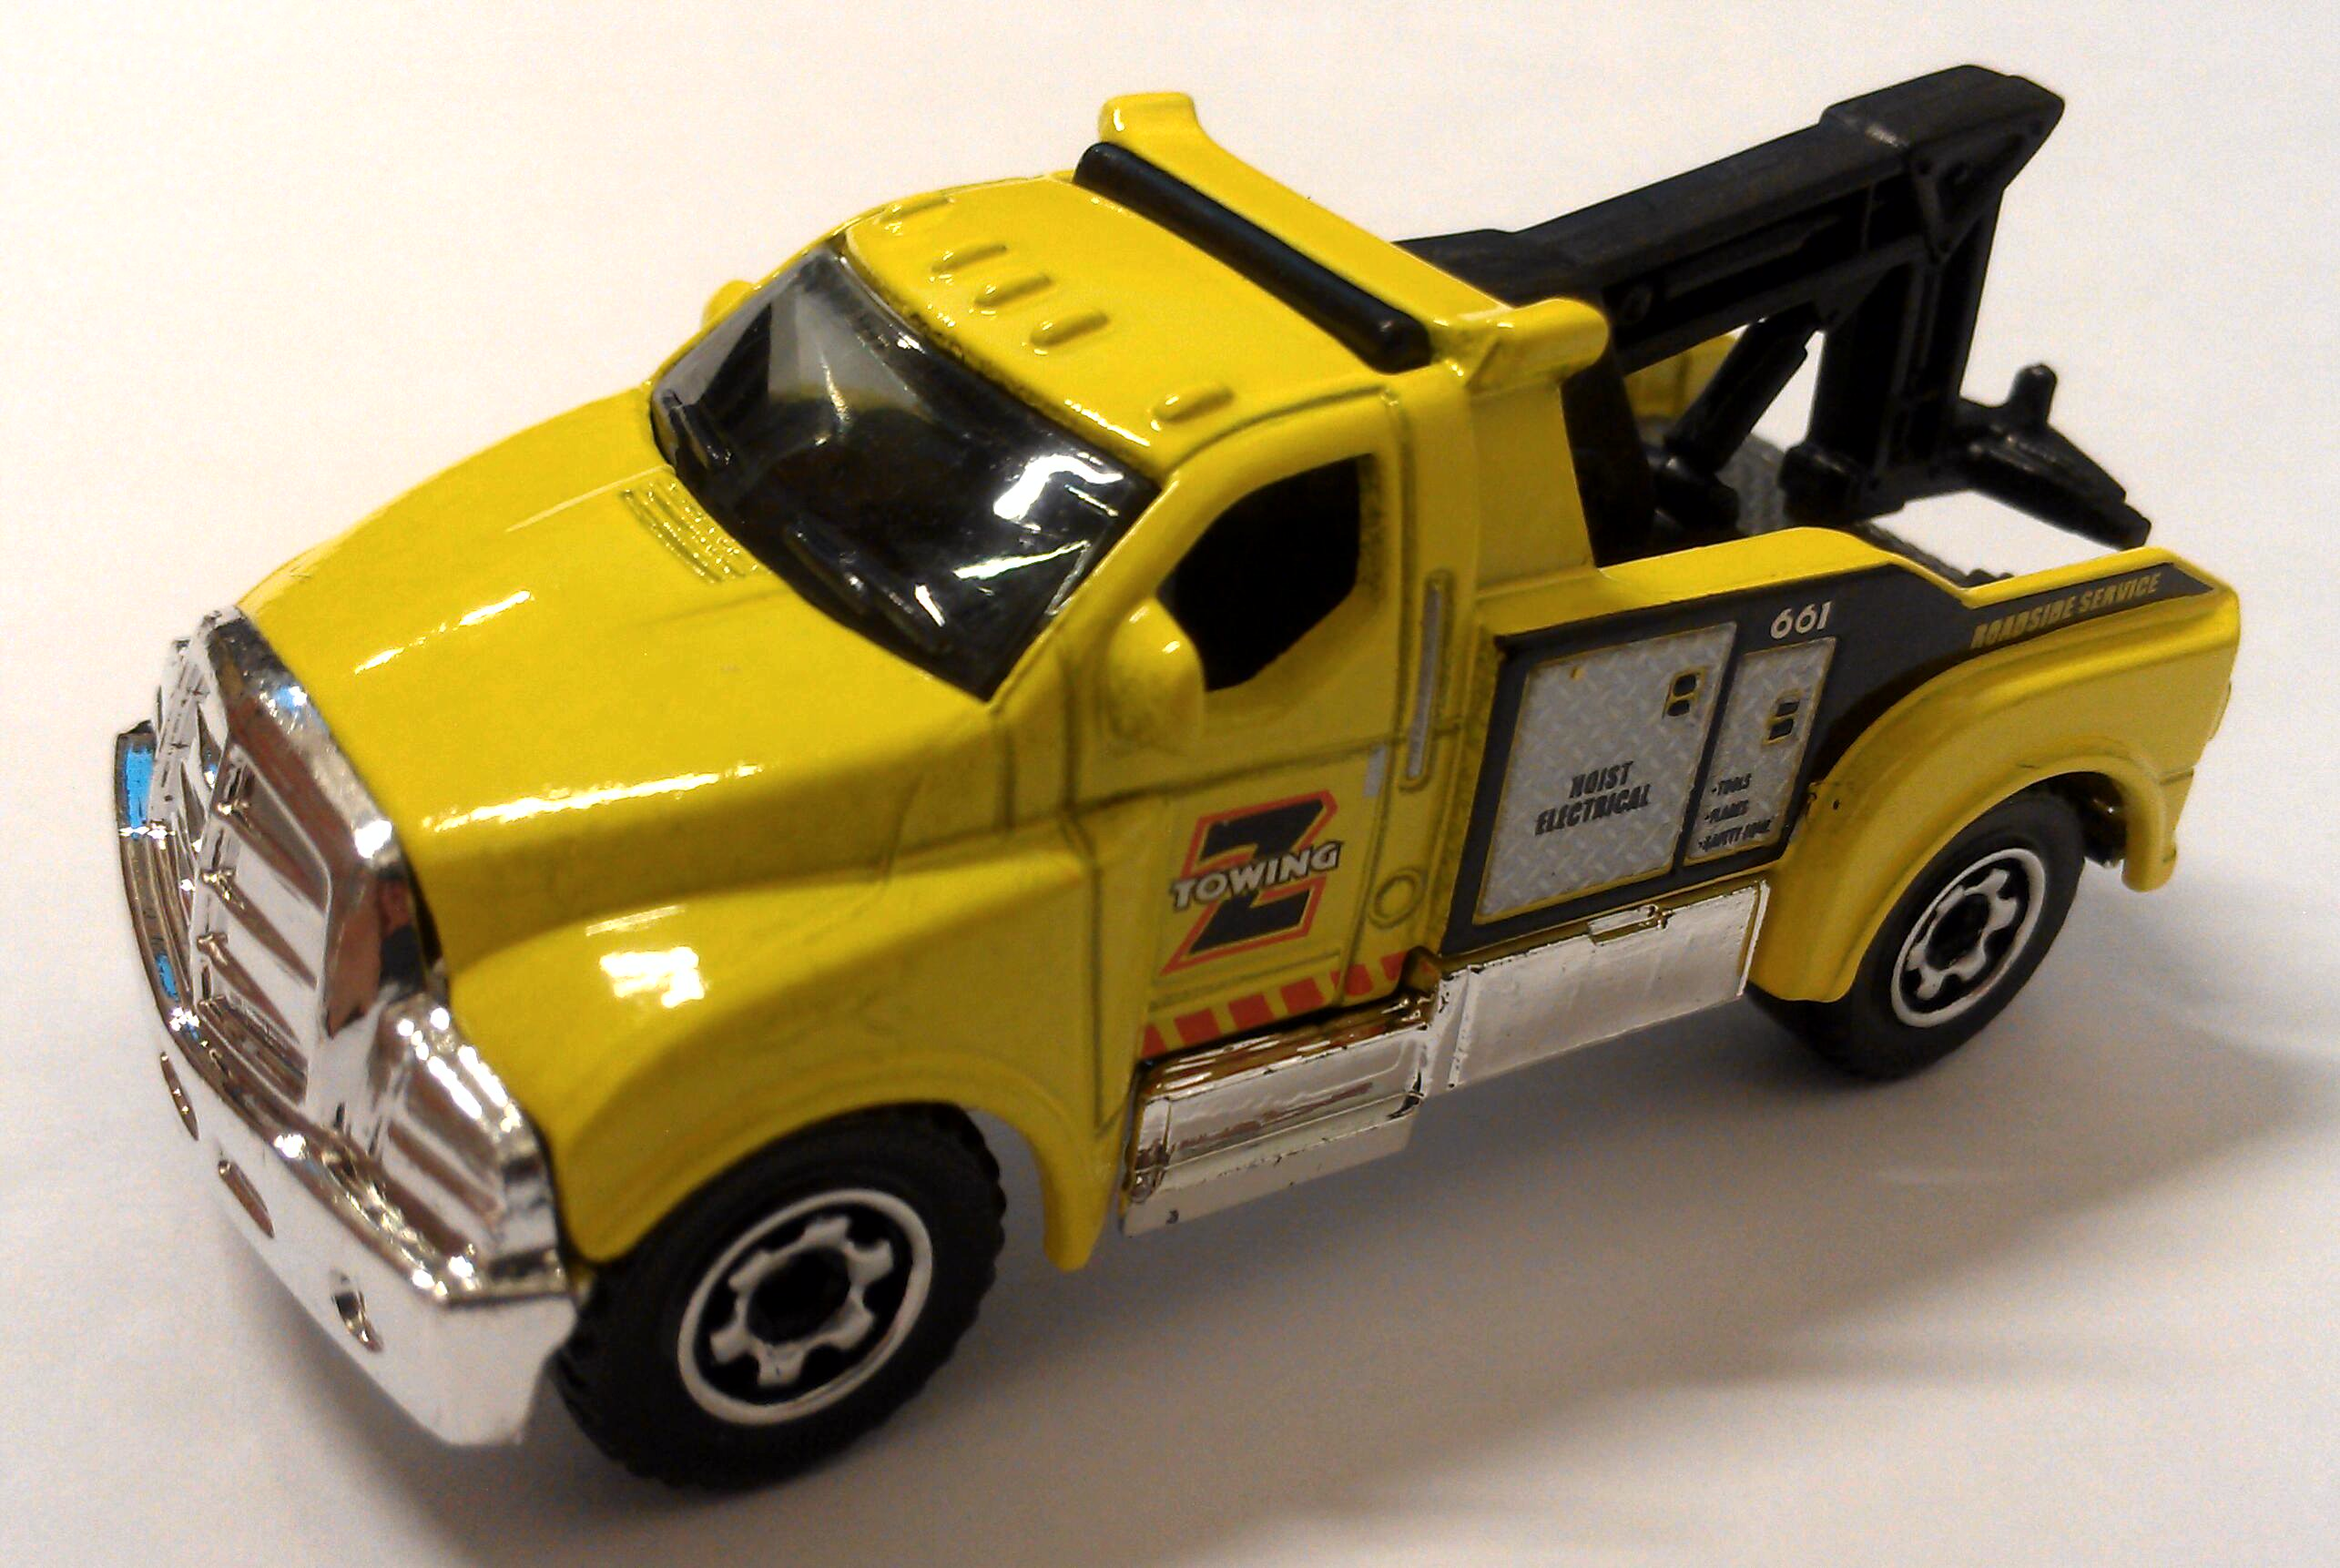 2005 Tow Truck